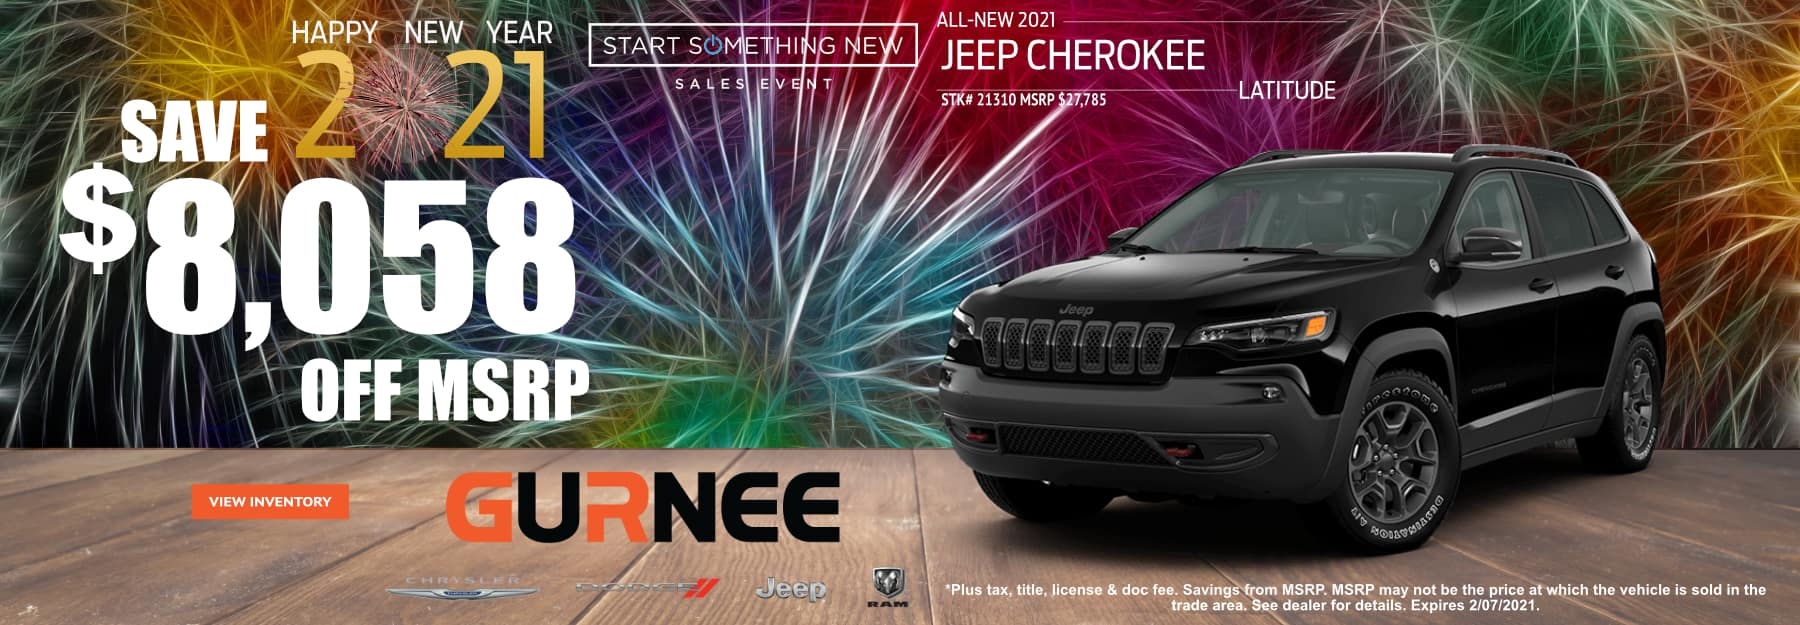 January-2021 Cherokee_Gurnee